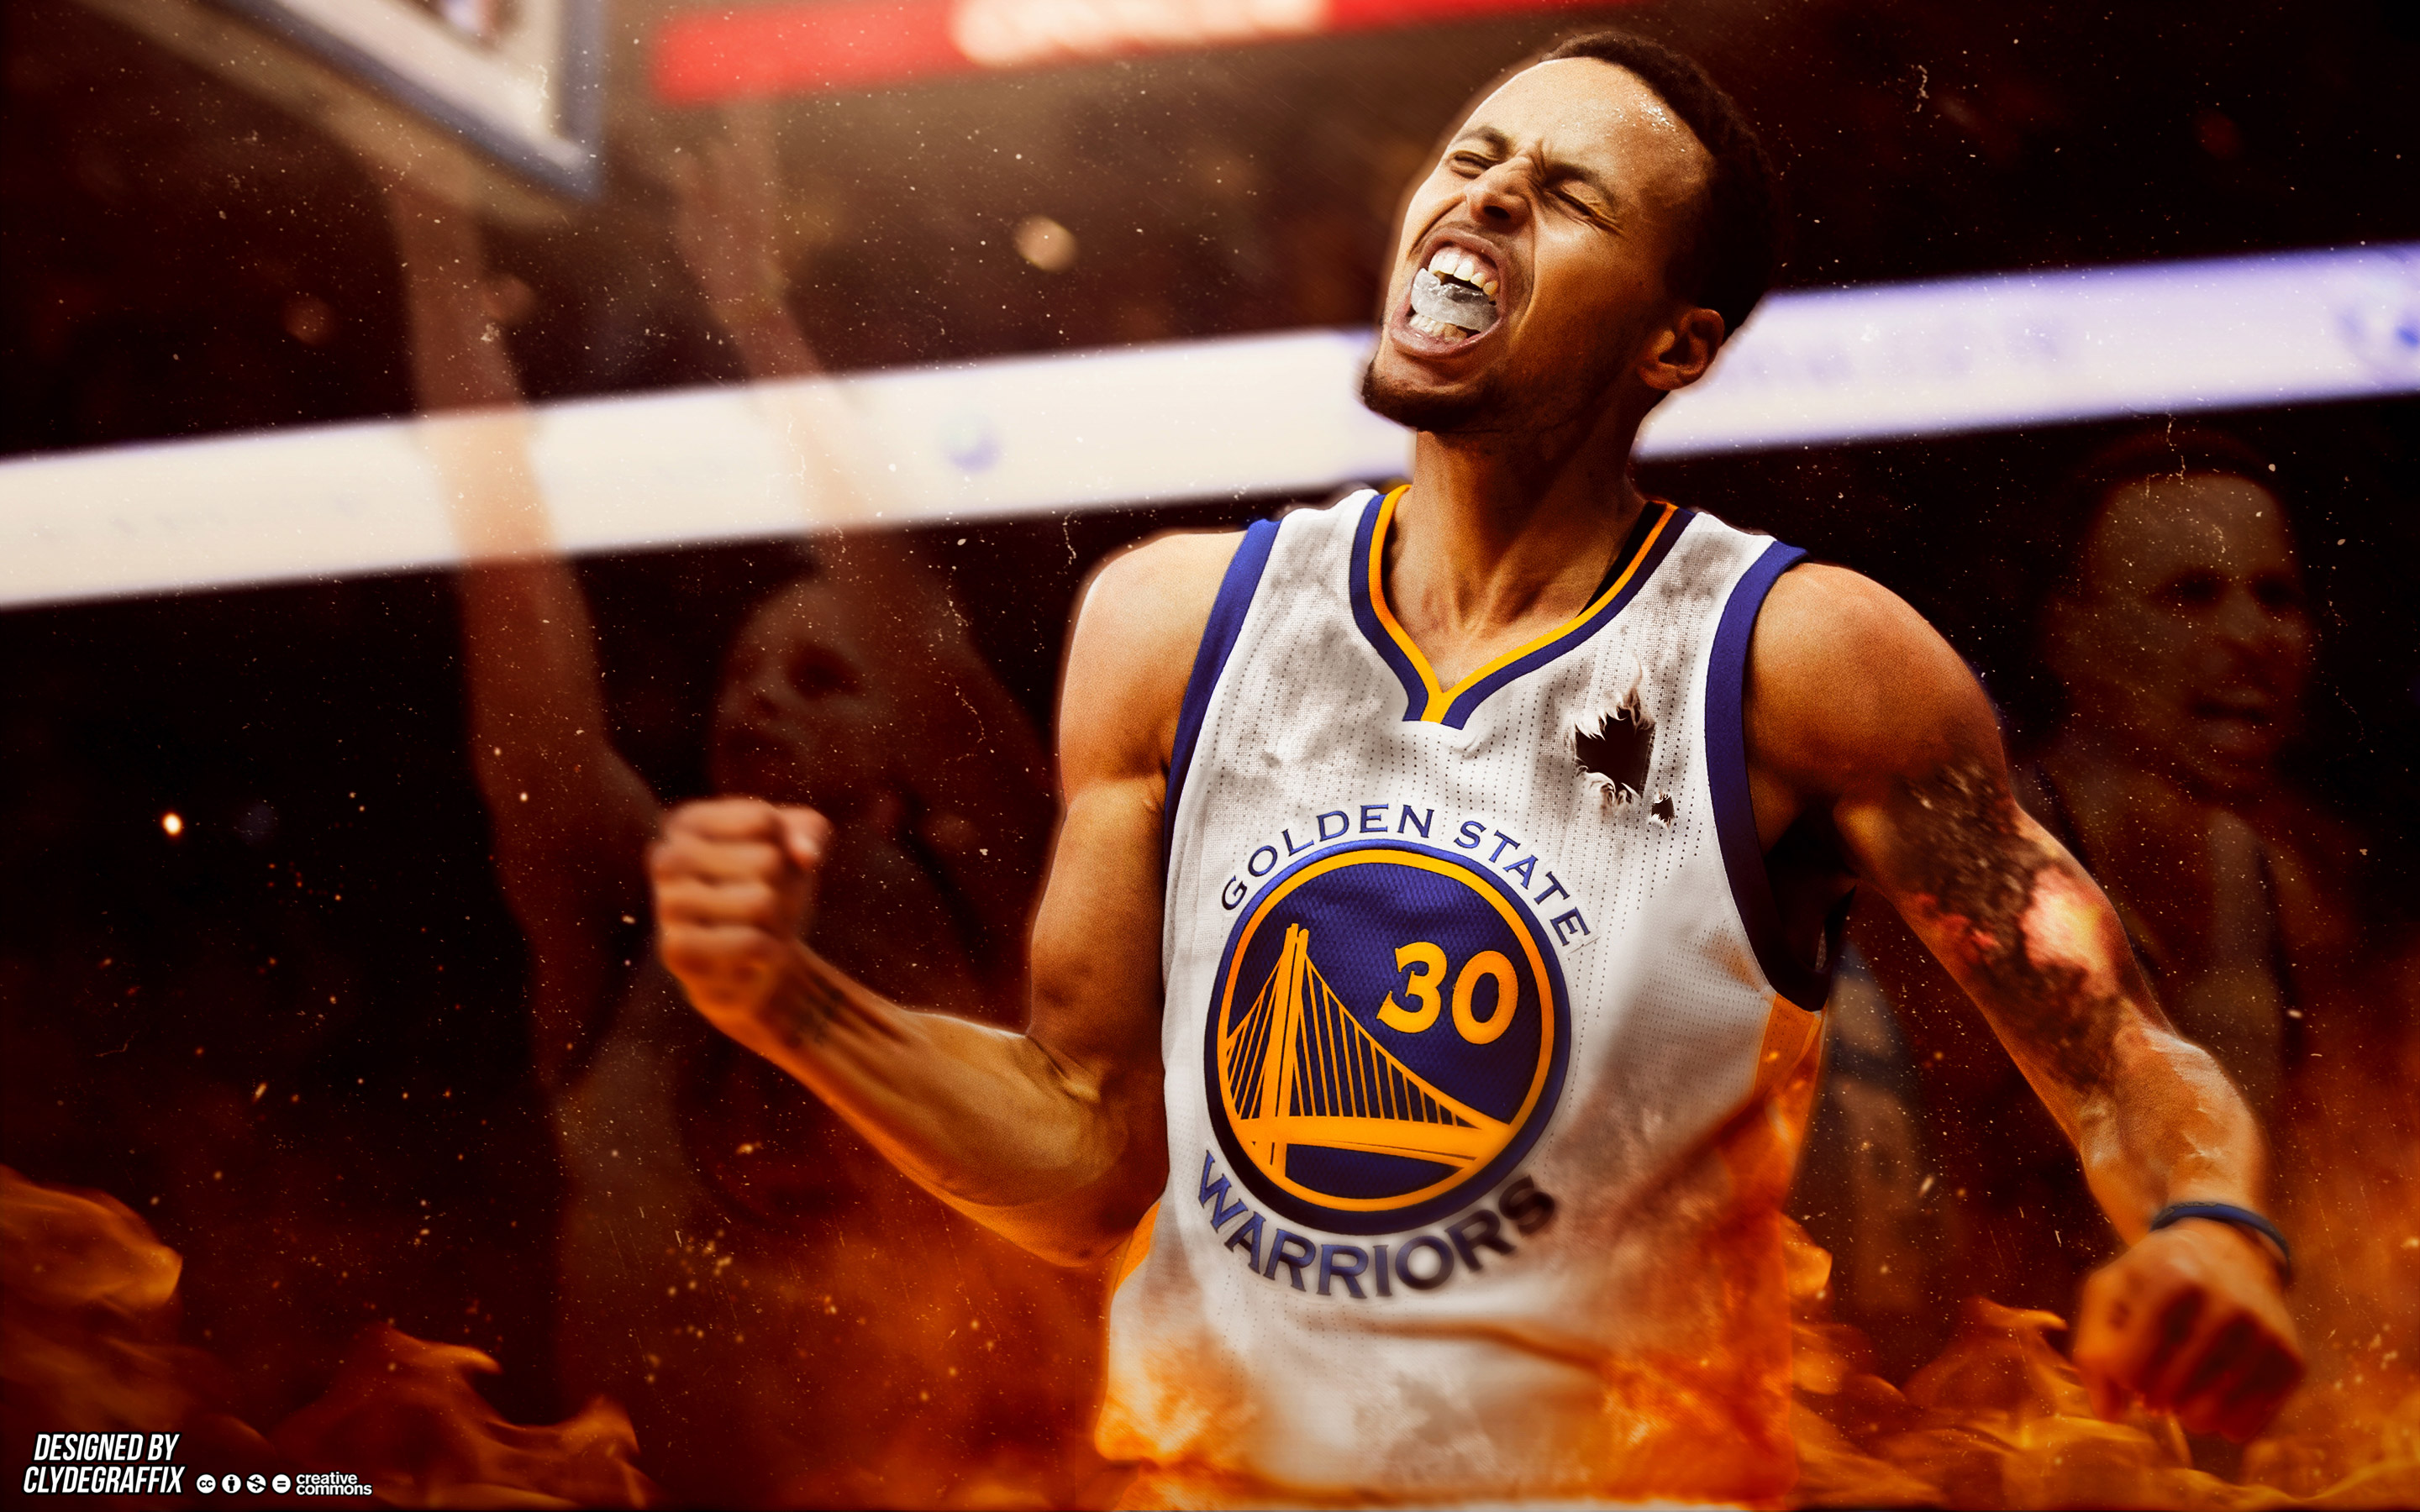 Golden State Warriors Wallpaper Hd Stephen Curry Background 2018 Wallpapers Hd